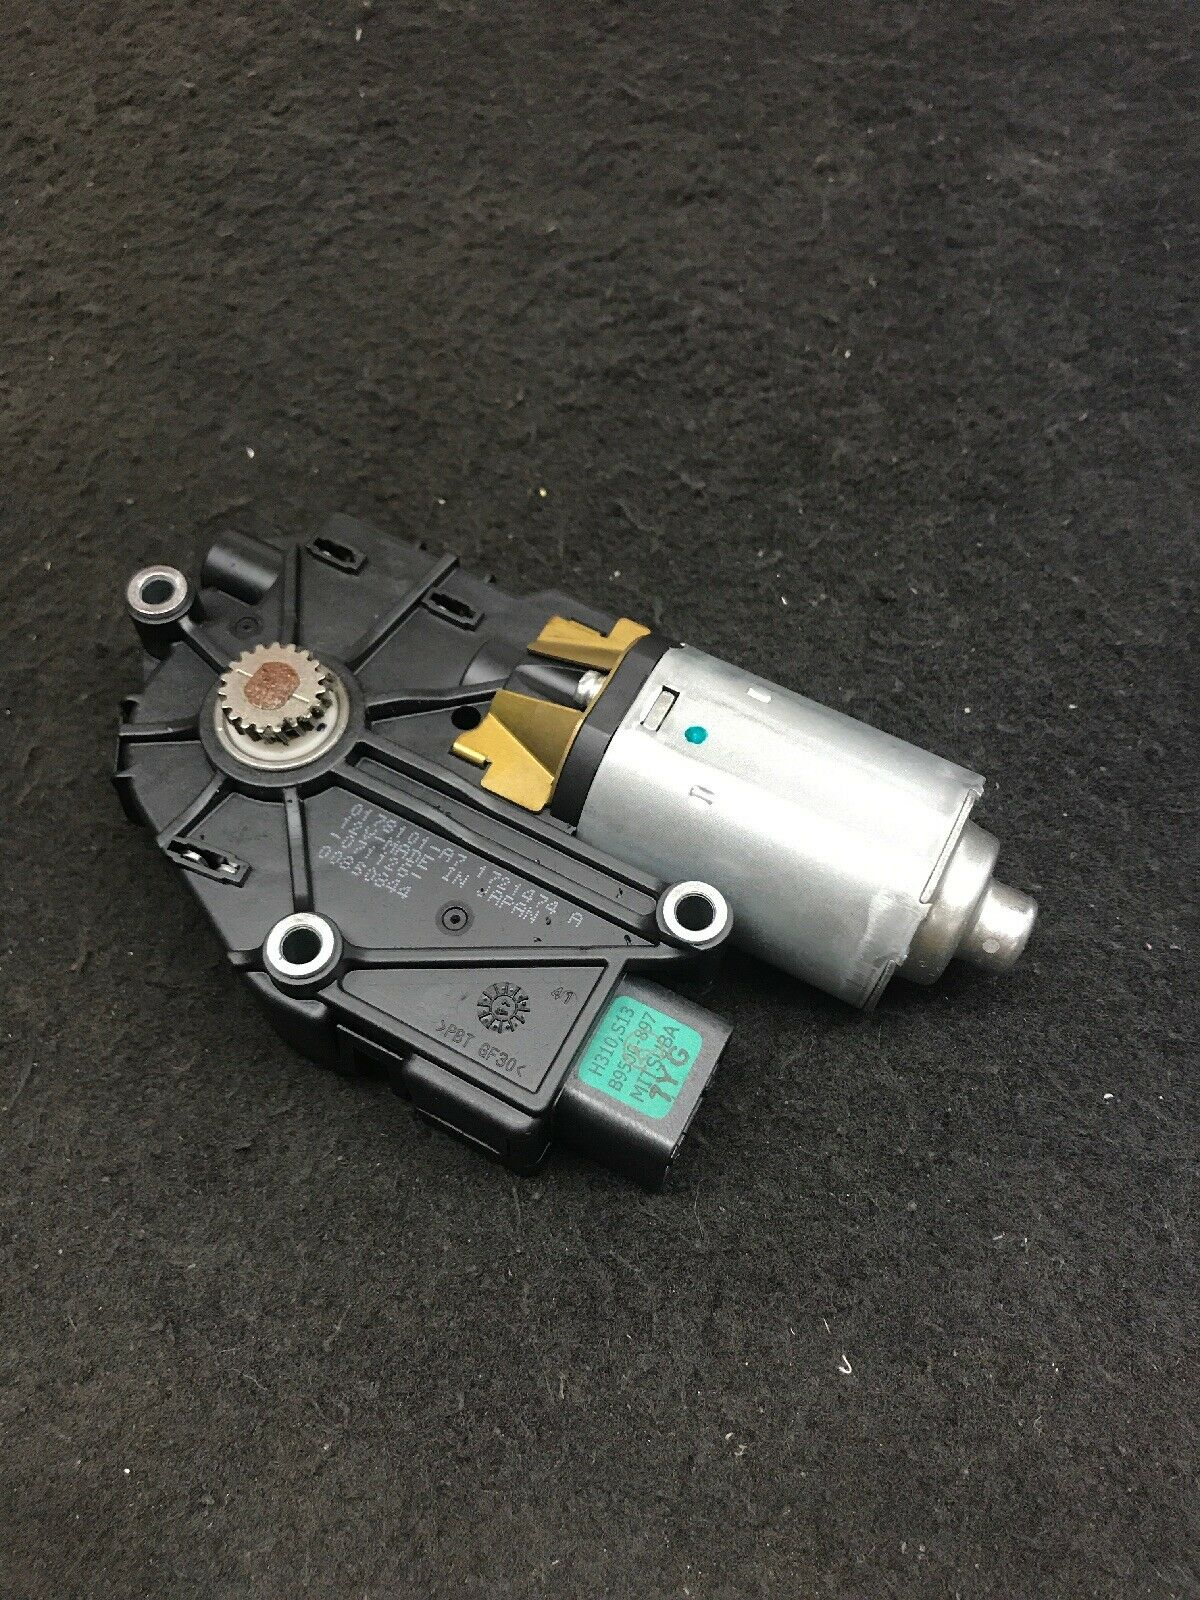 Infiniti G35 G37 Sunroof Motor OEM Part# 0178101A71721474 Fits 2007-2012